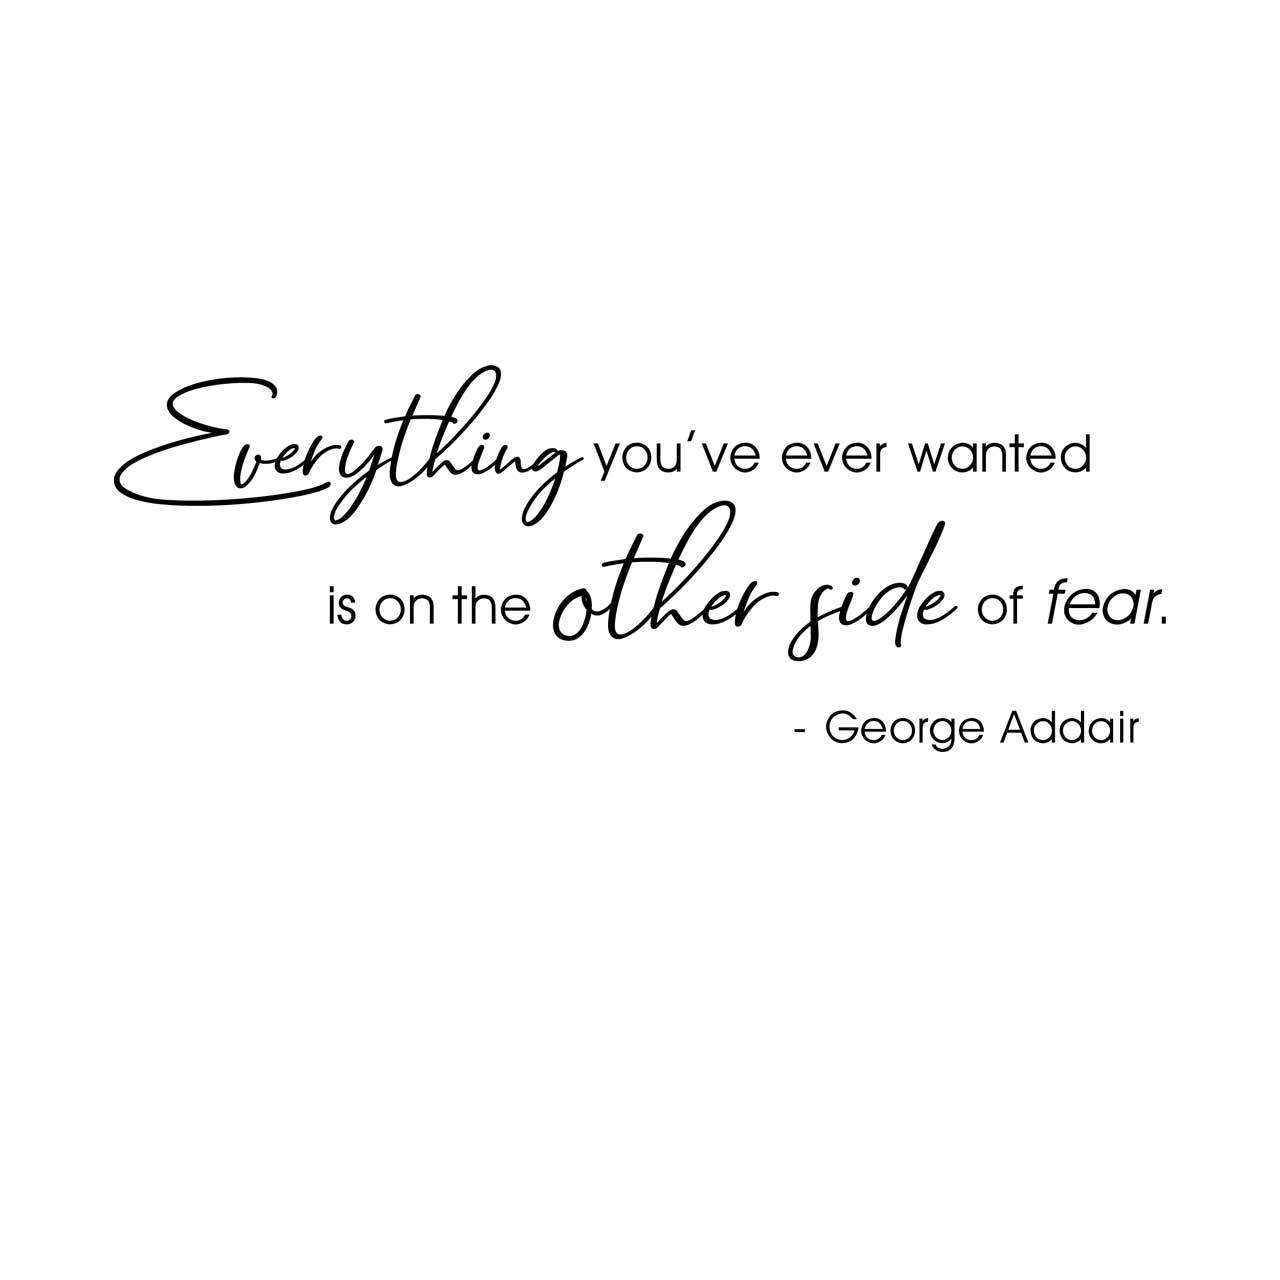 """""""Everything you've ever wanted is on the other side of fear. - George Addair"""" written in black on a white background"""